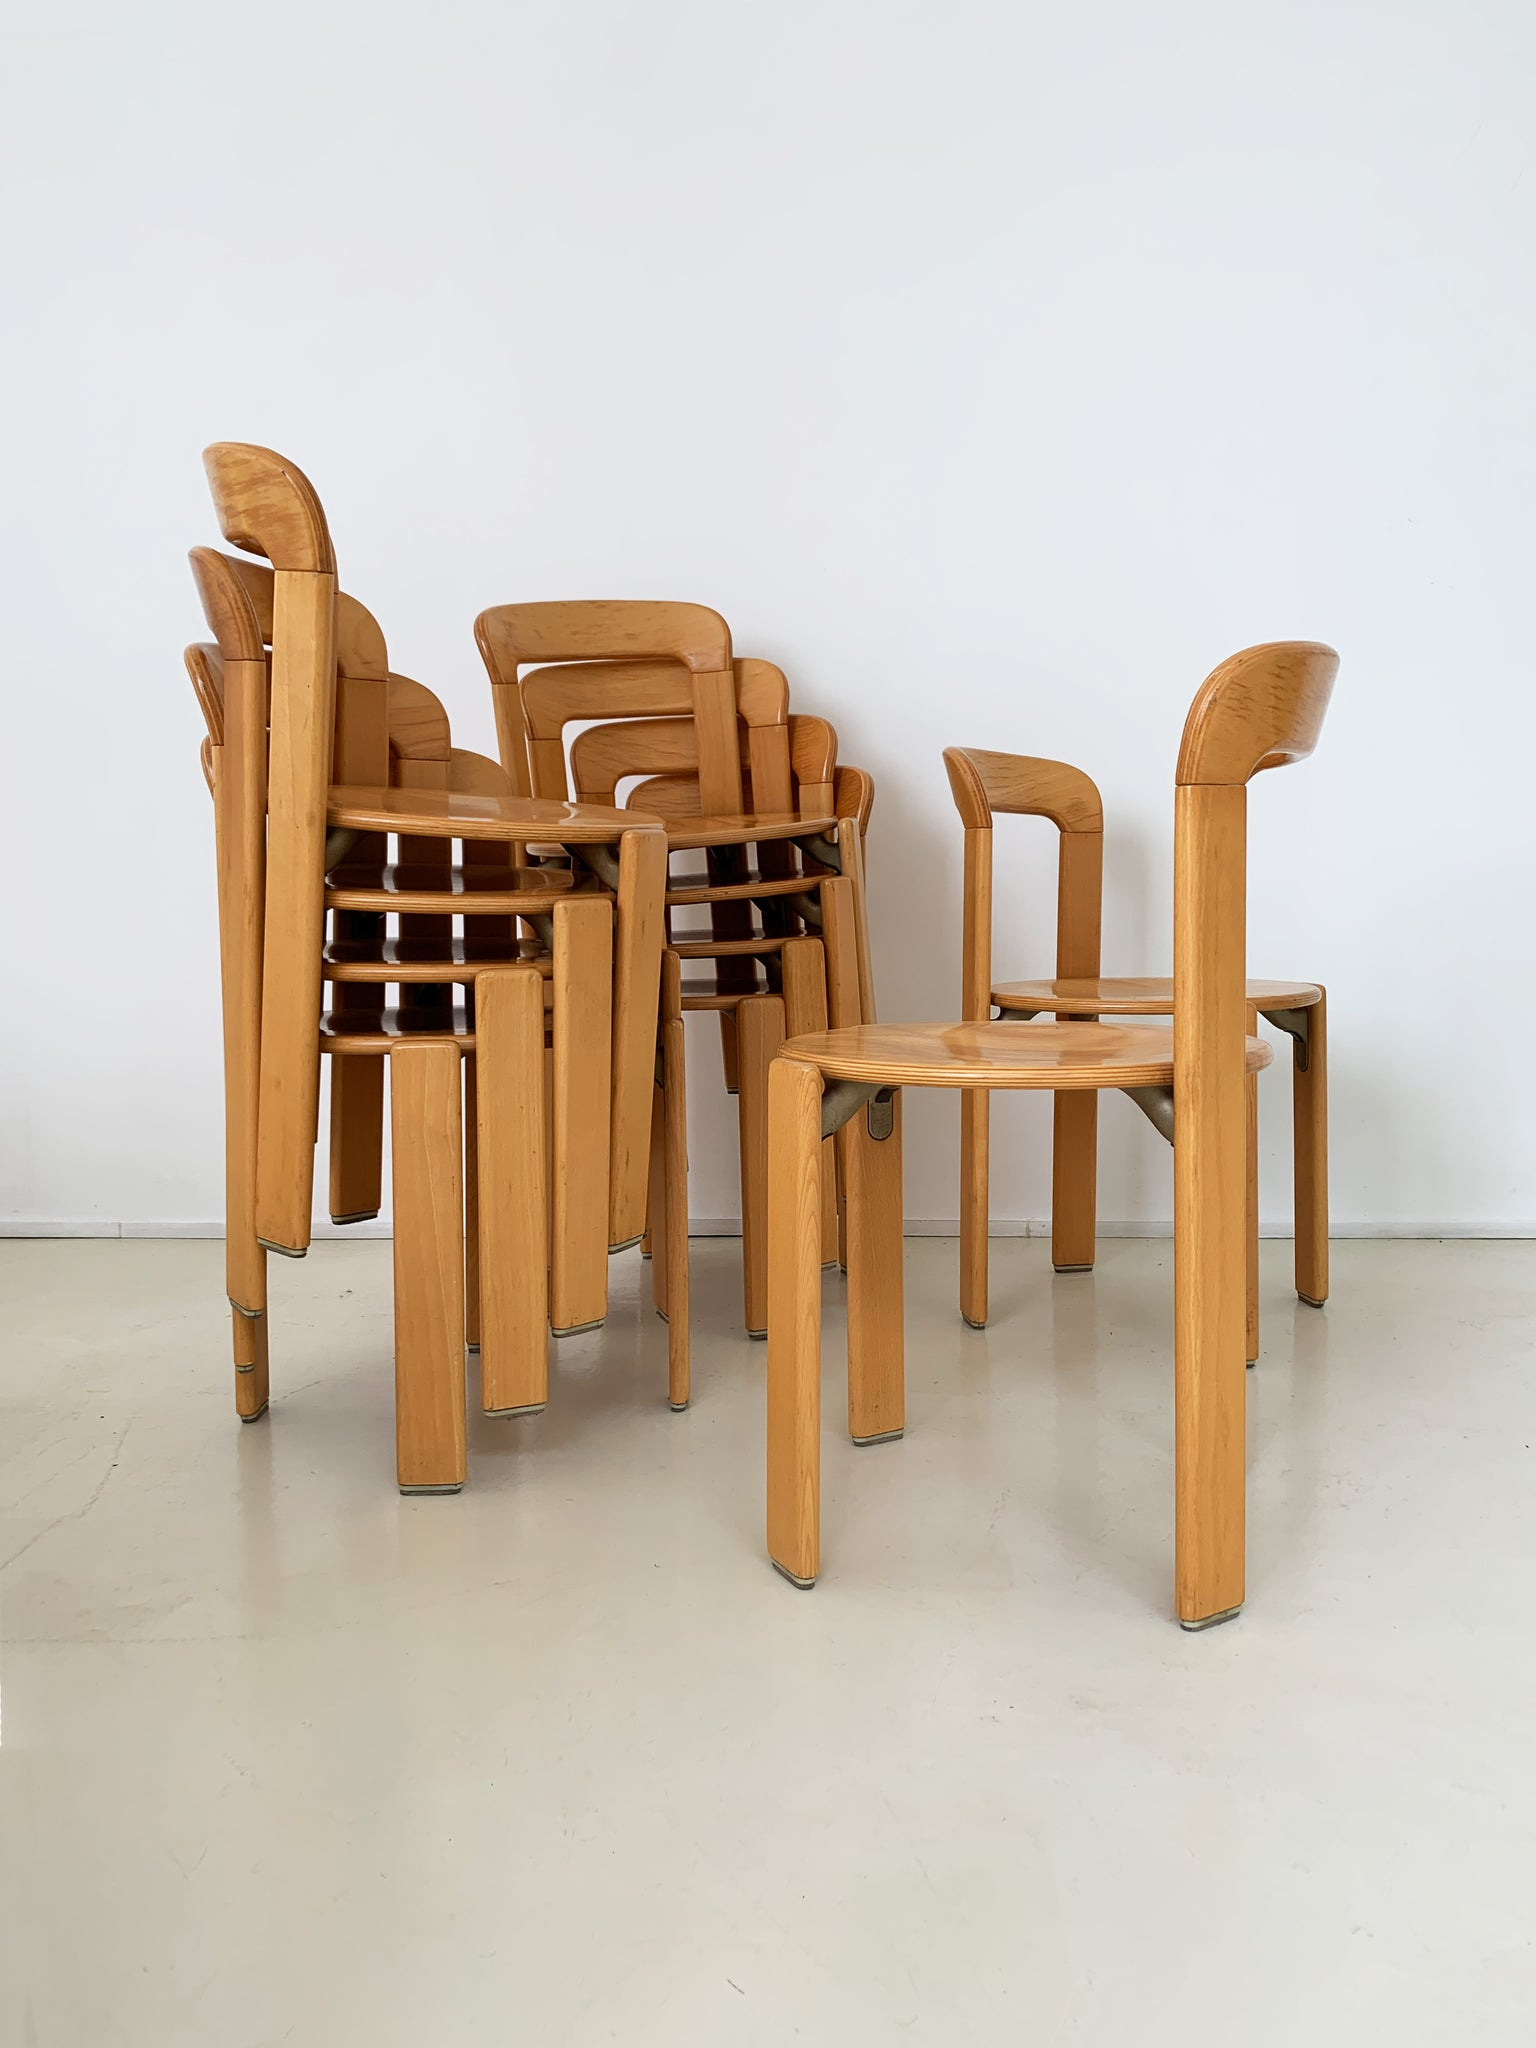 1970s Beech Rey Stacking Chairs Designed by Bruno Rey